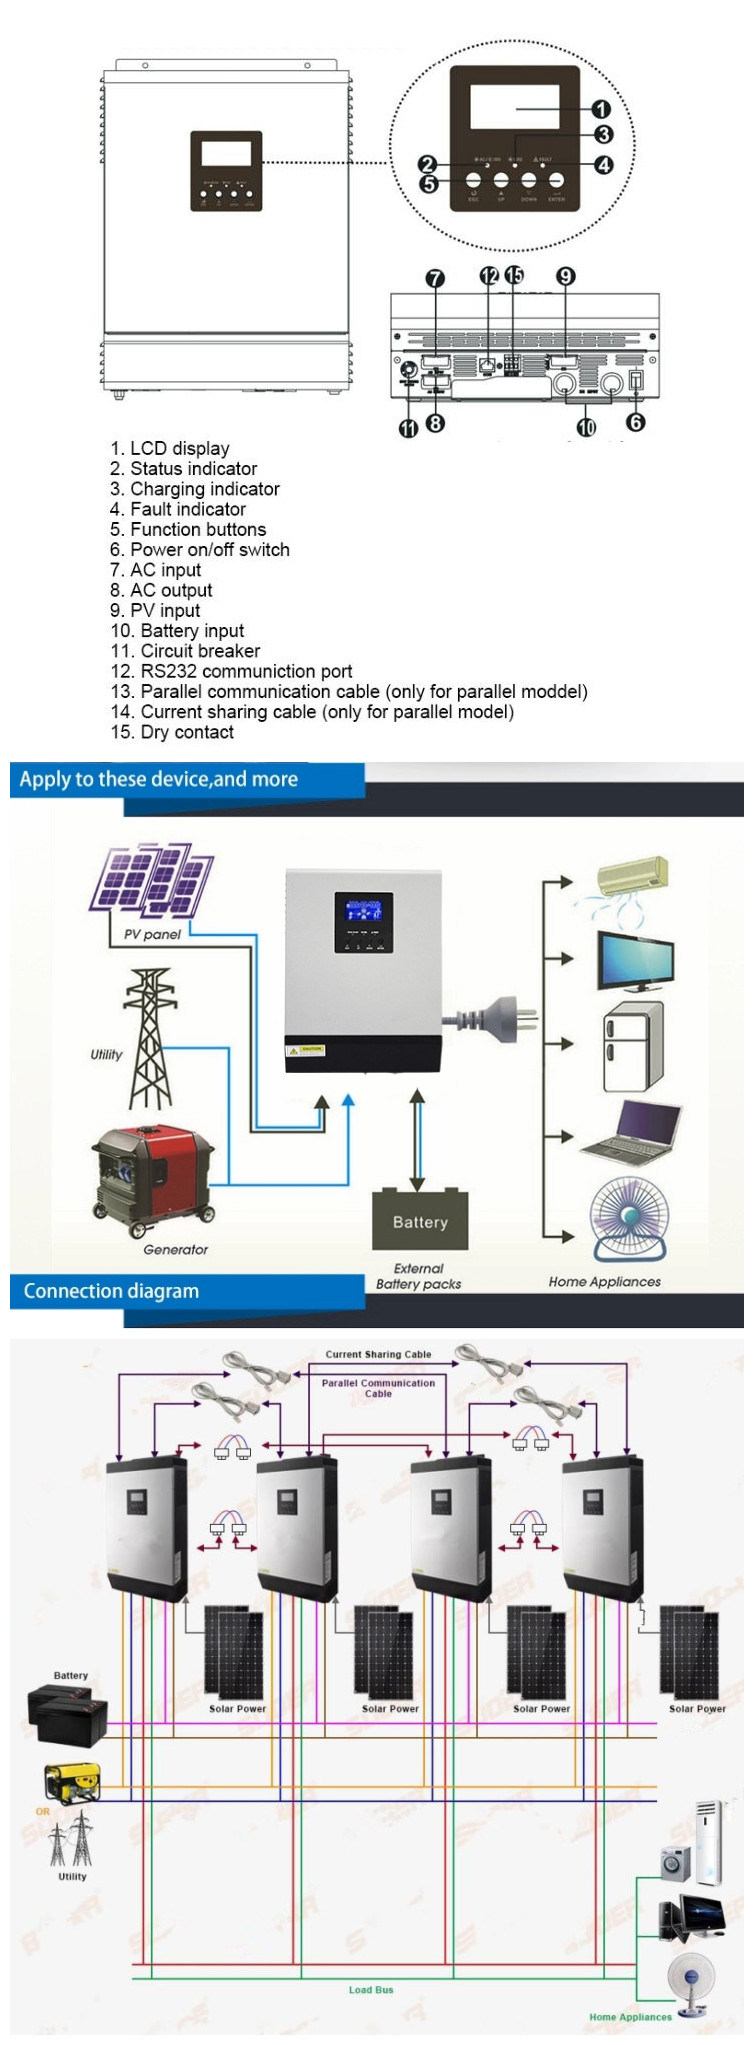 Smart Expo Pure Sine Wave Off Grid Hybrid Solar Inverter Design Of The 3 Kva Modified Should Look Like This Can Power All Kinds Appliances In Home Or Office Including Motor Type Such As Tube Light Fan Refrigerator And Air Conditioner